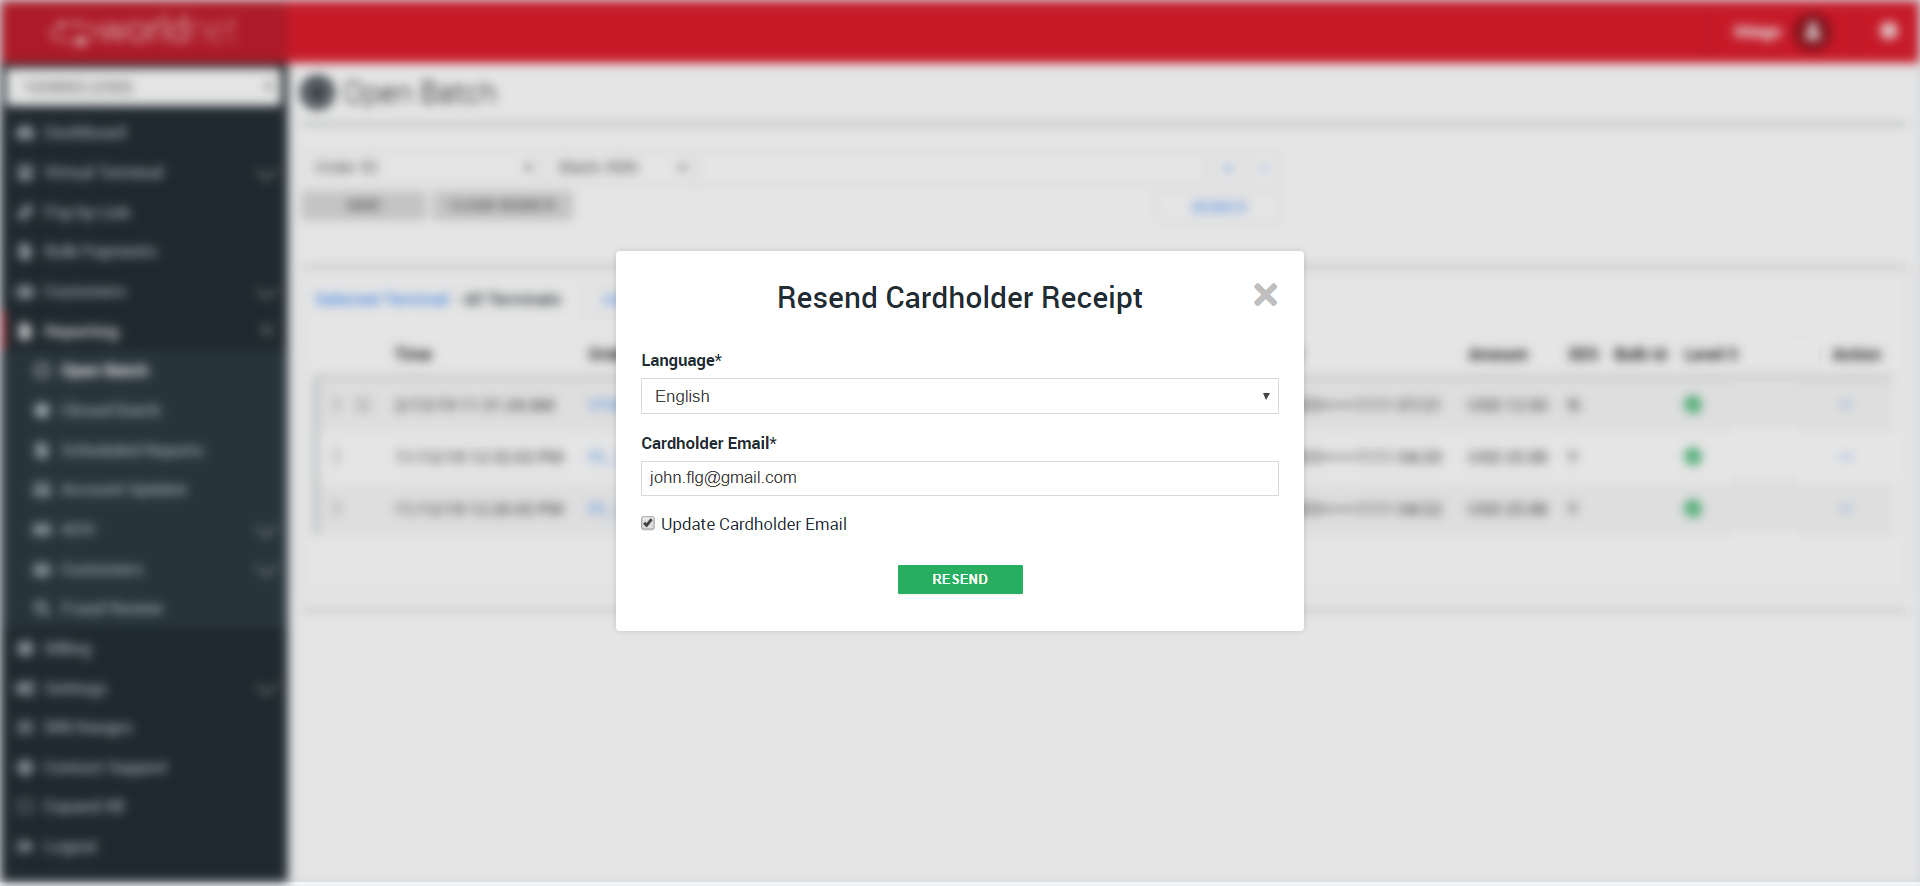 merchant:existing_merchant:selfcare_system:reporting:selfcare-openbatch-actions-resend_cardholder_receipt.png